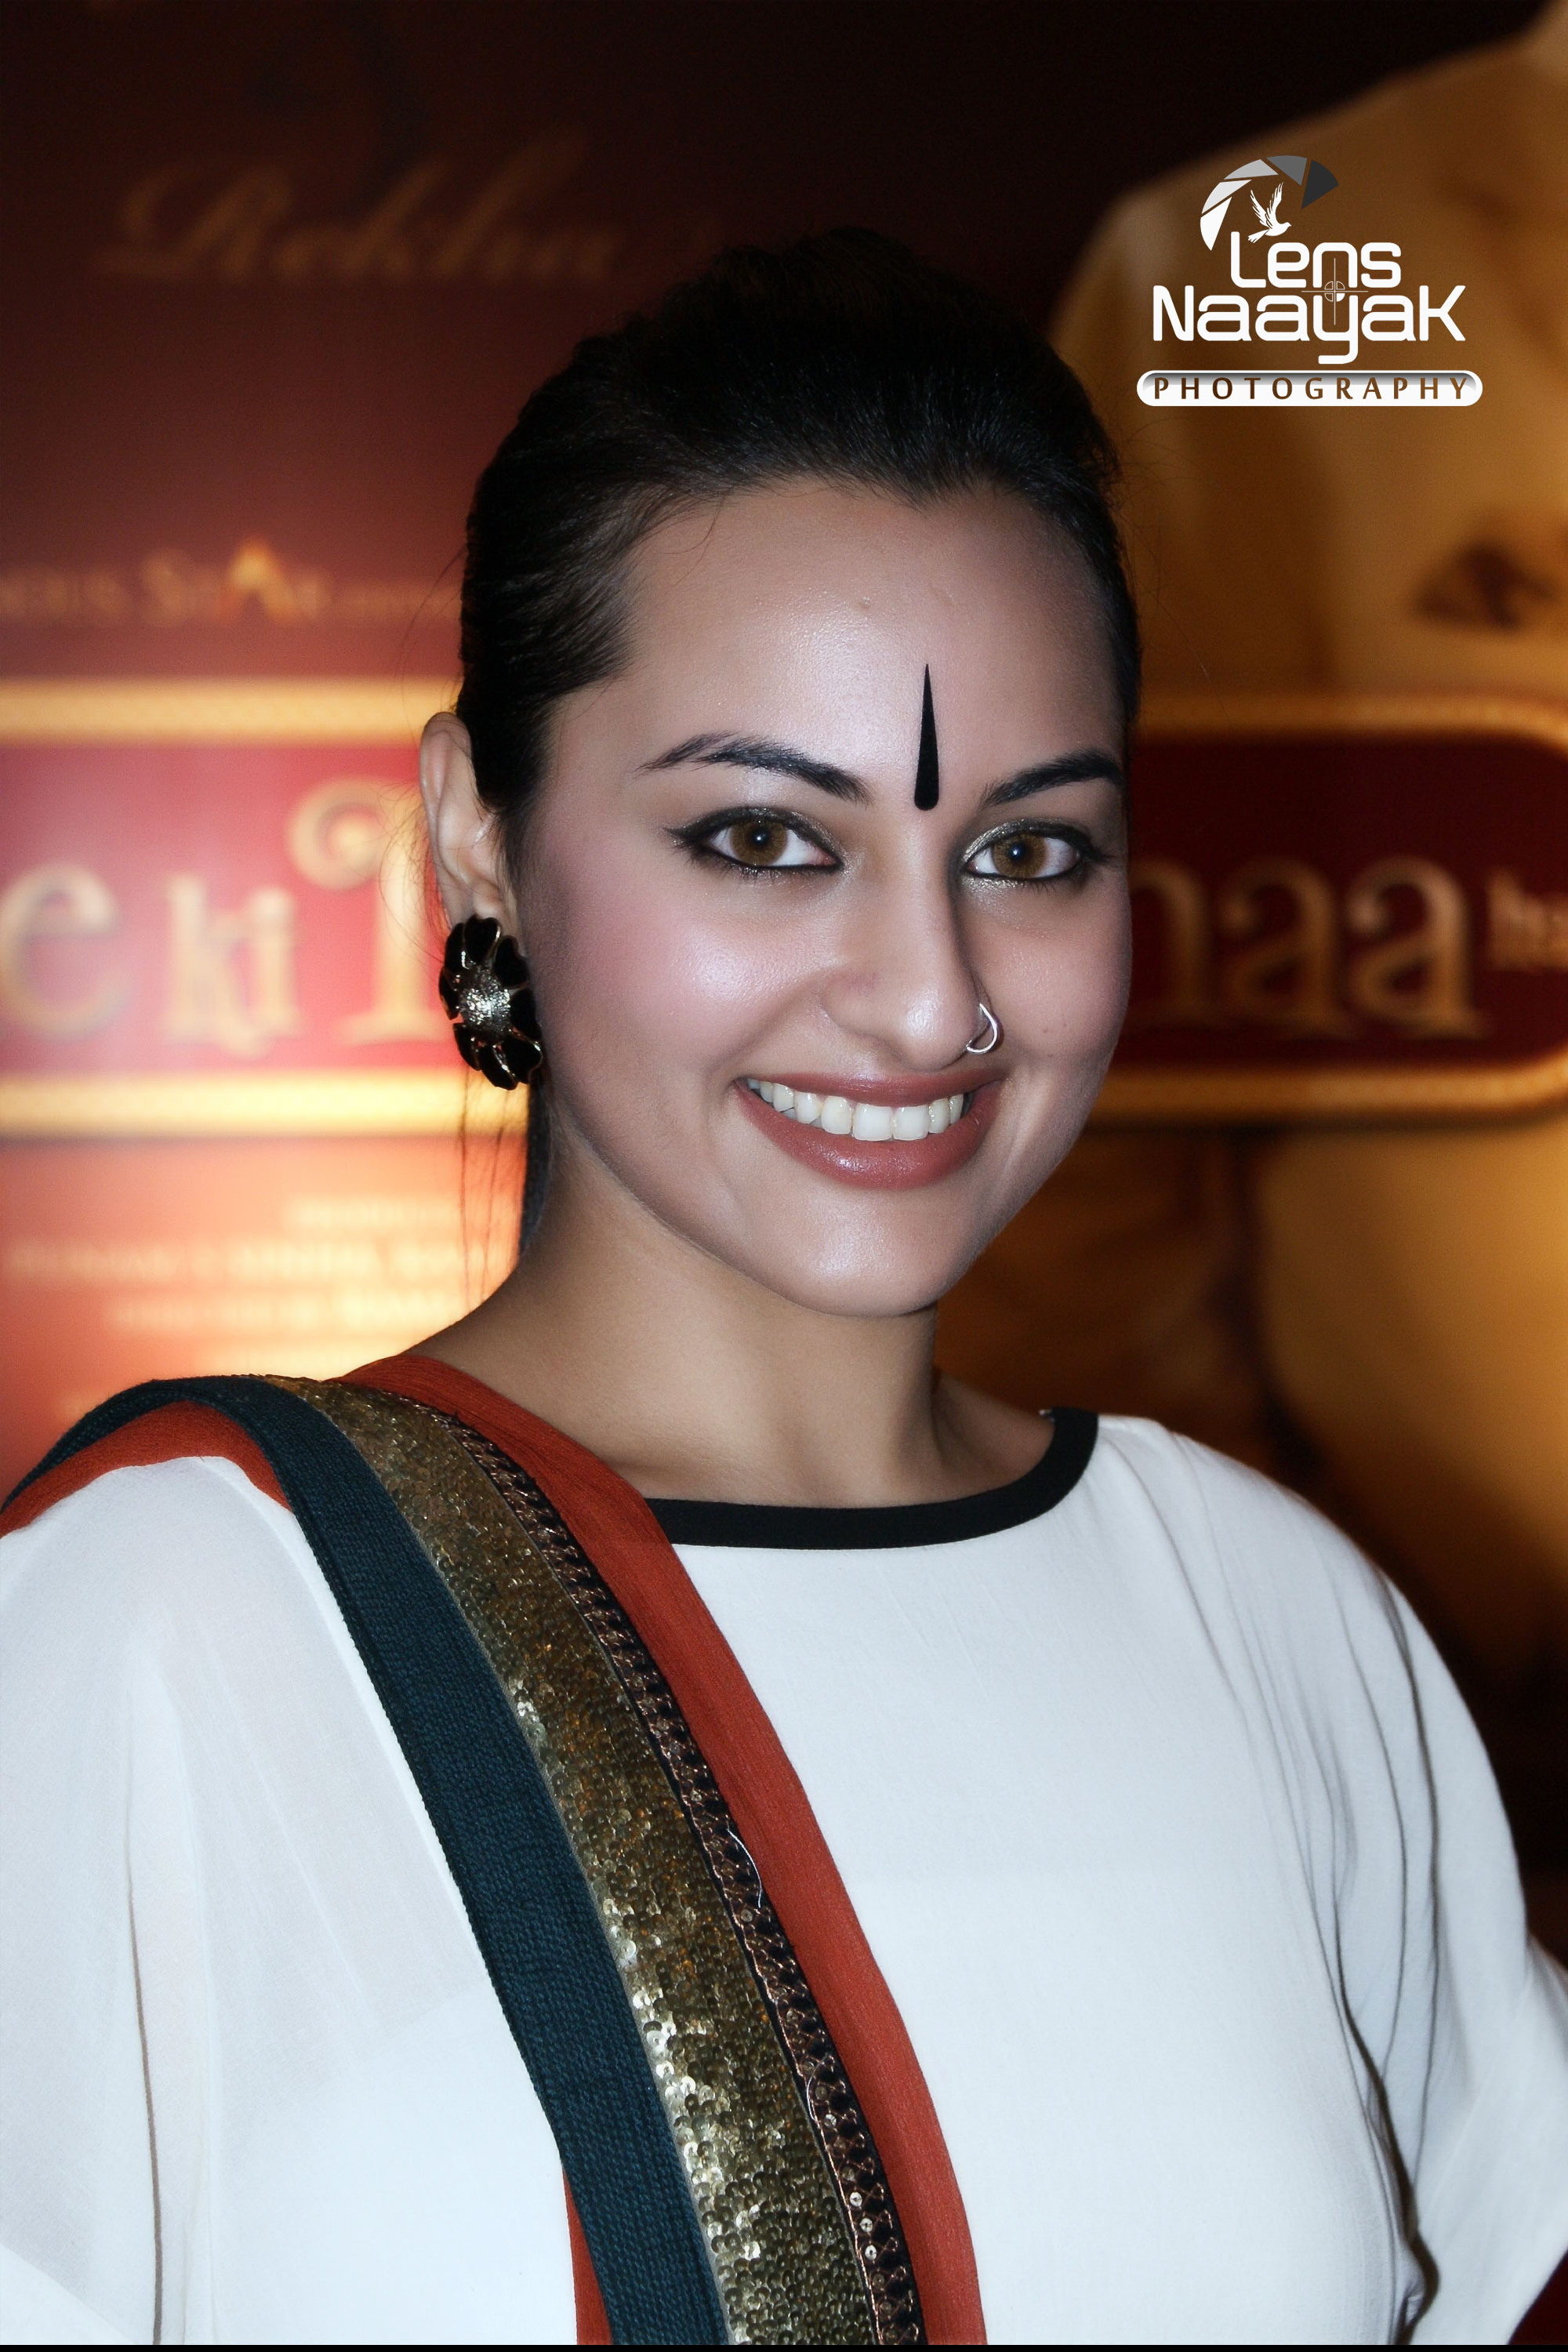 file:bollywood actress sonakshi sinhacamaal mustafa sikander